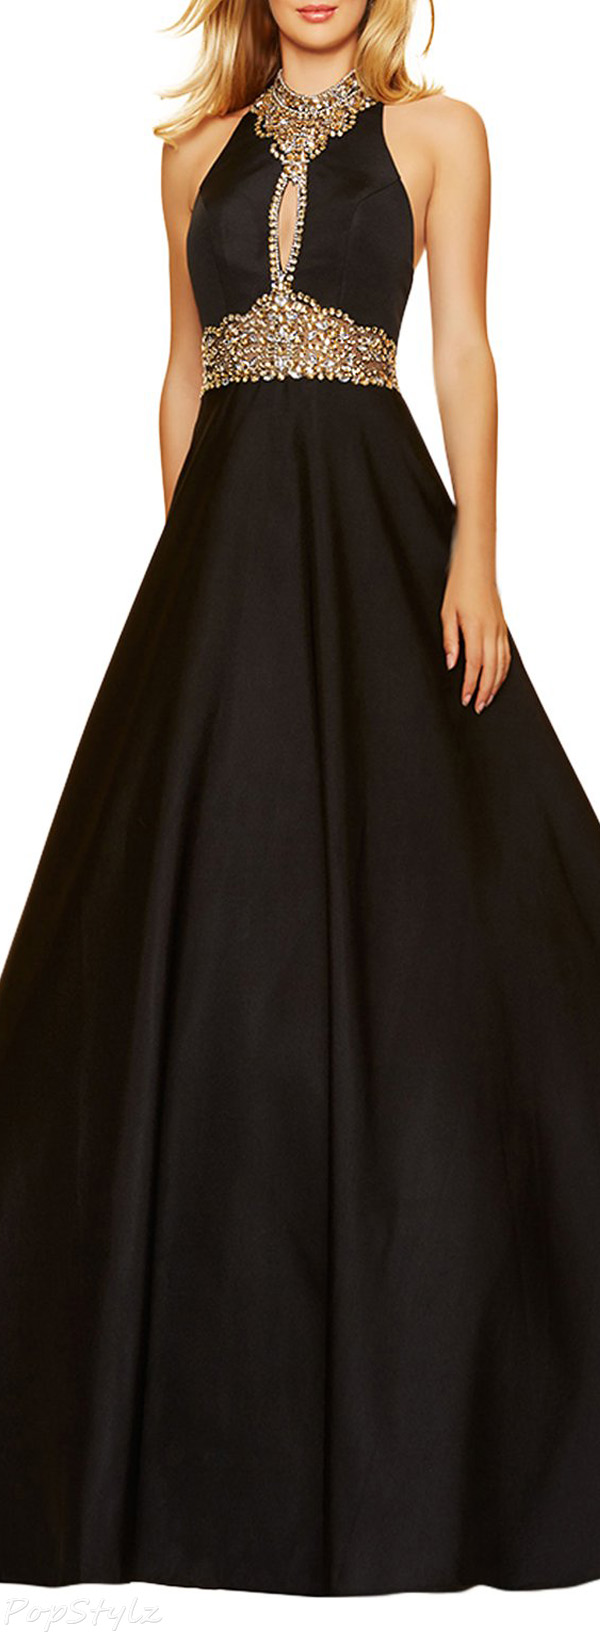 LovingDress High Neck Satin & Rhinestones Evening Gown